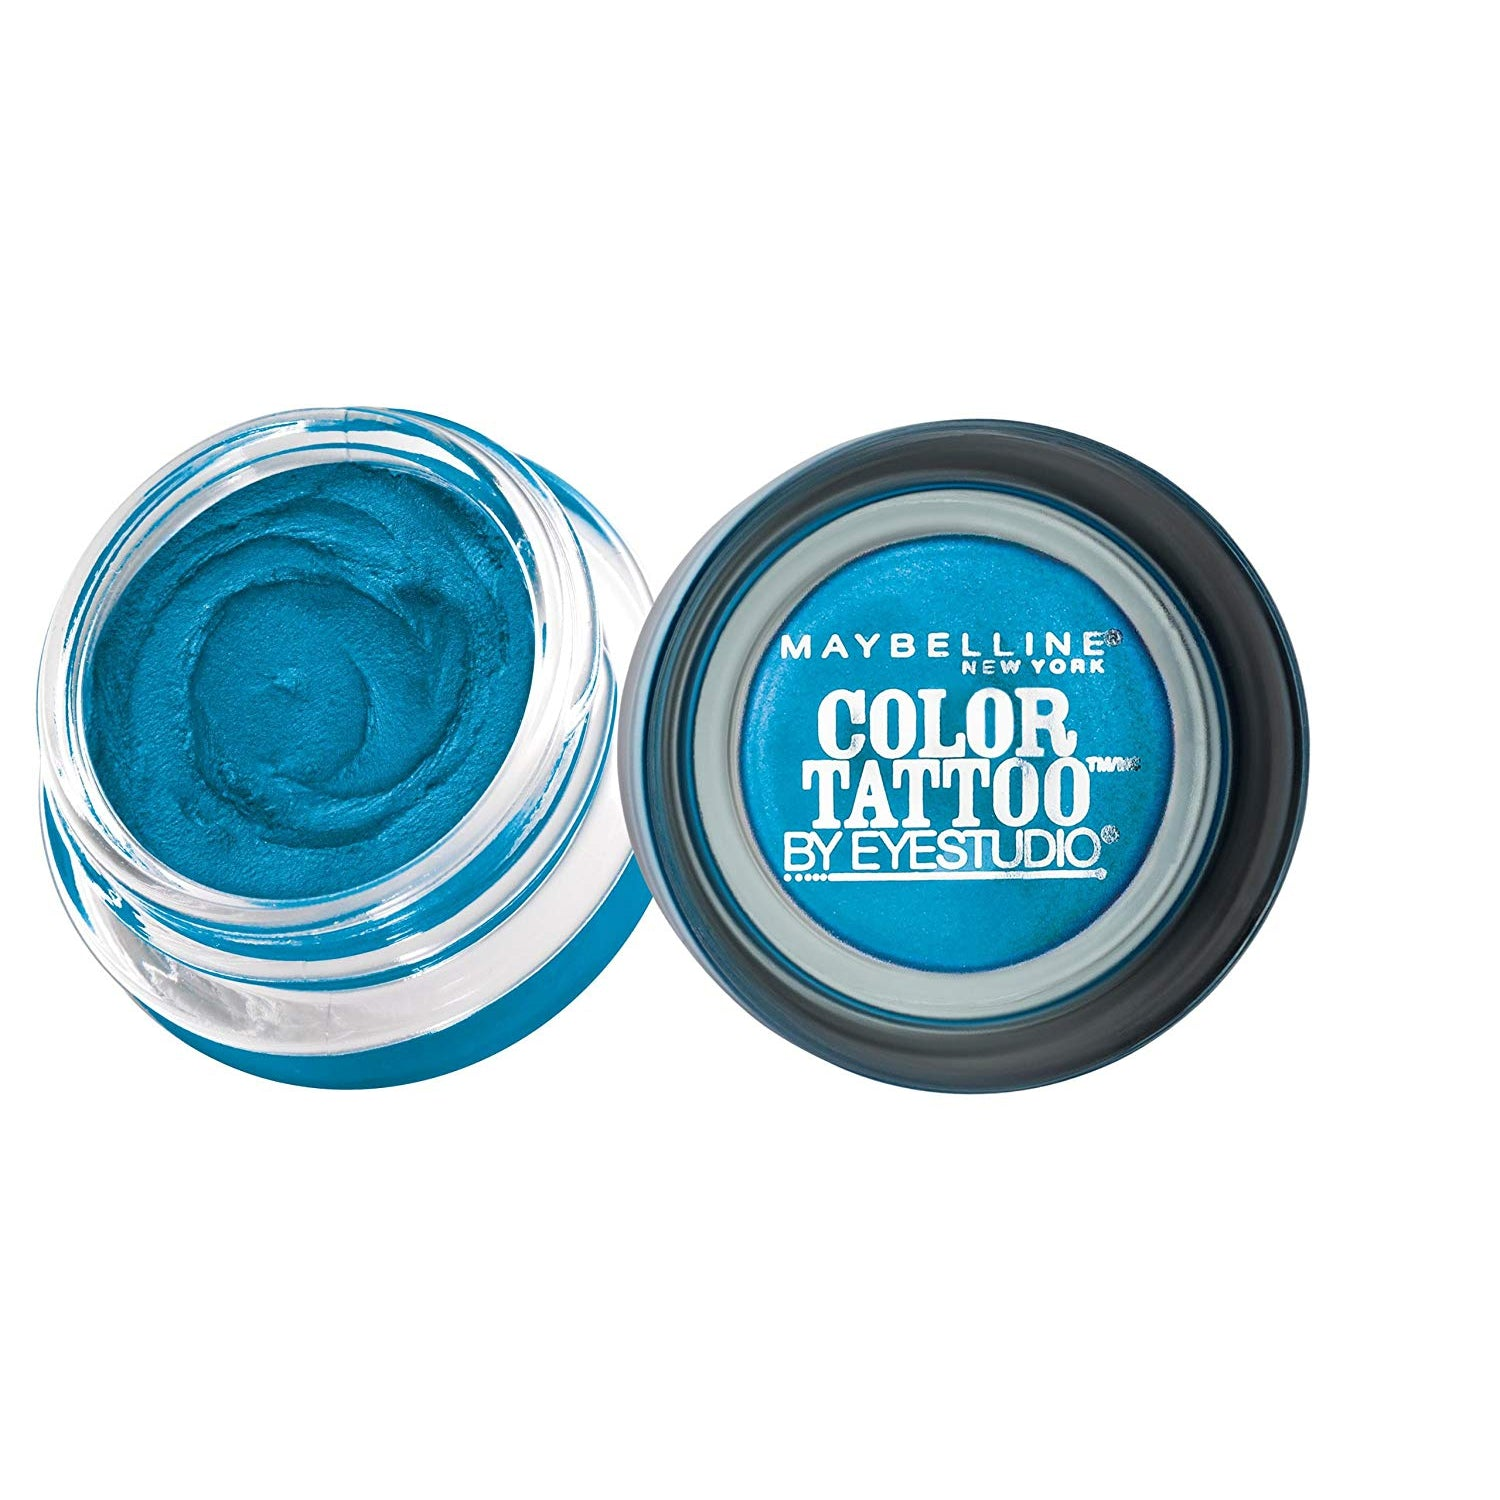 Maybelline ColorTattoo Metal 24hr Cream Gel Eyeshadow